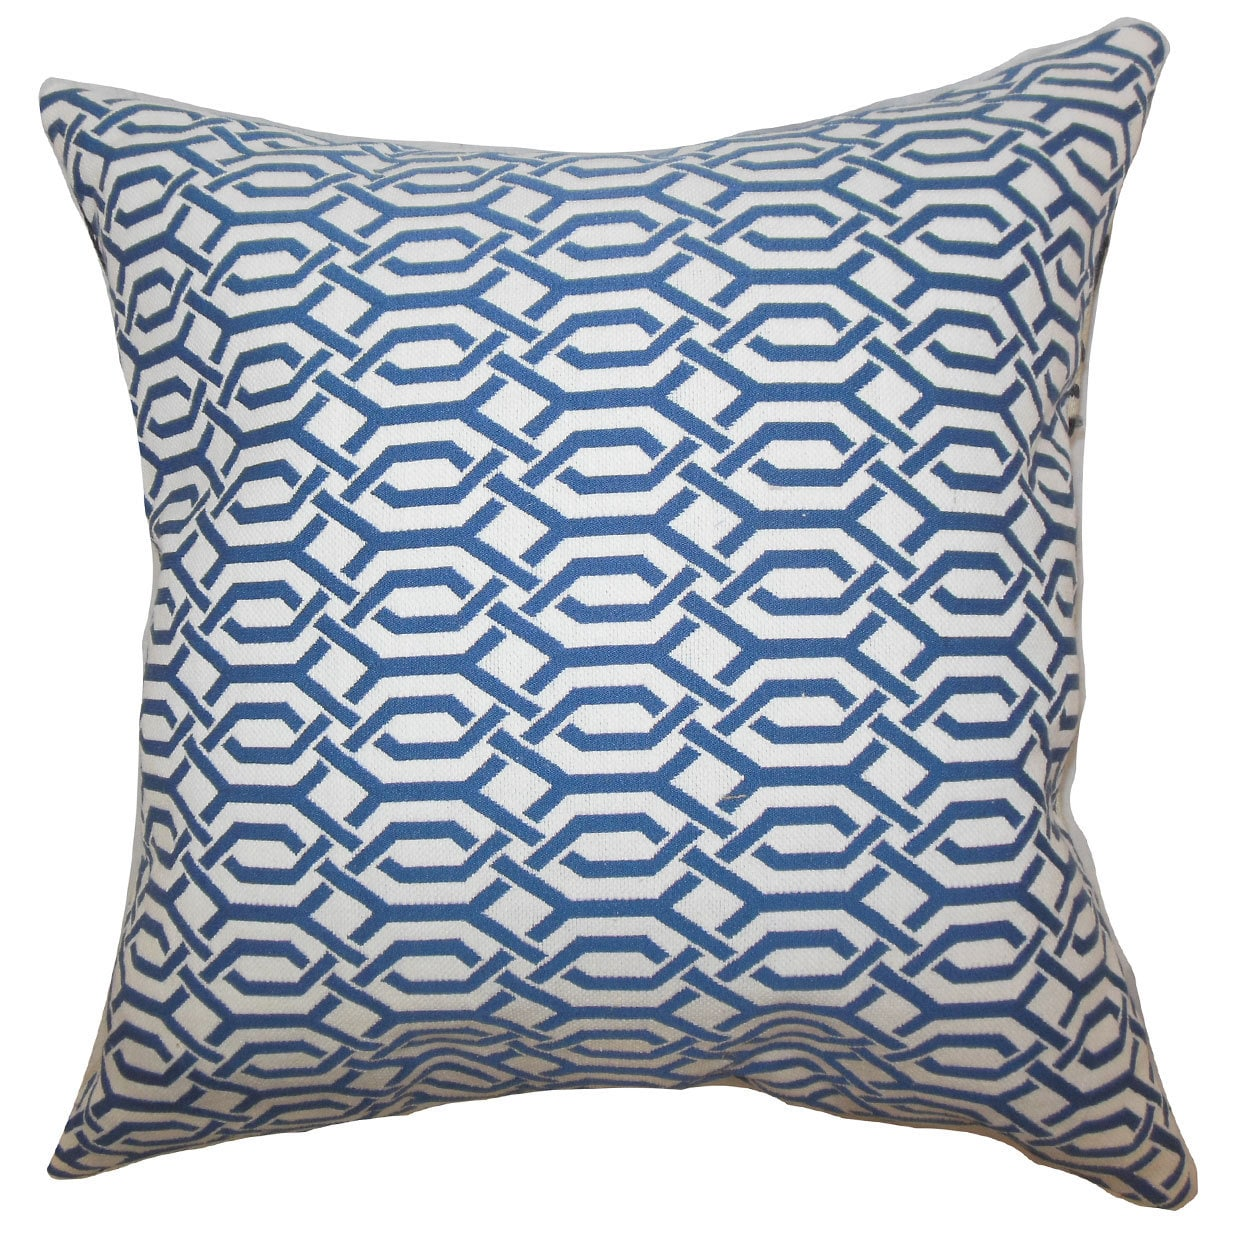 The Pillow Collection Catriona Geometric 22-inch Down Feather Throw Pillow Blue